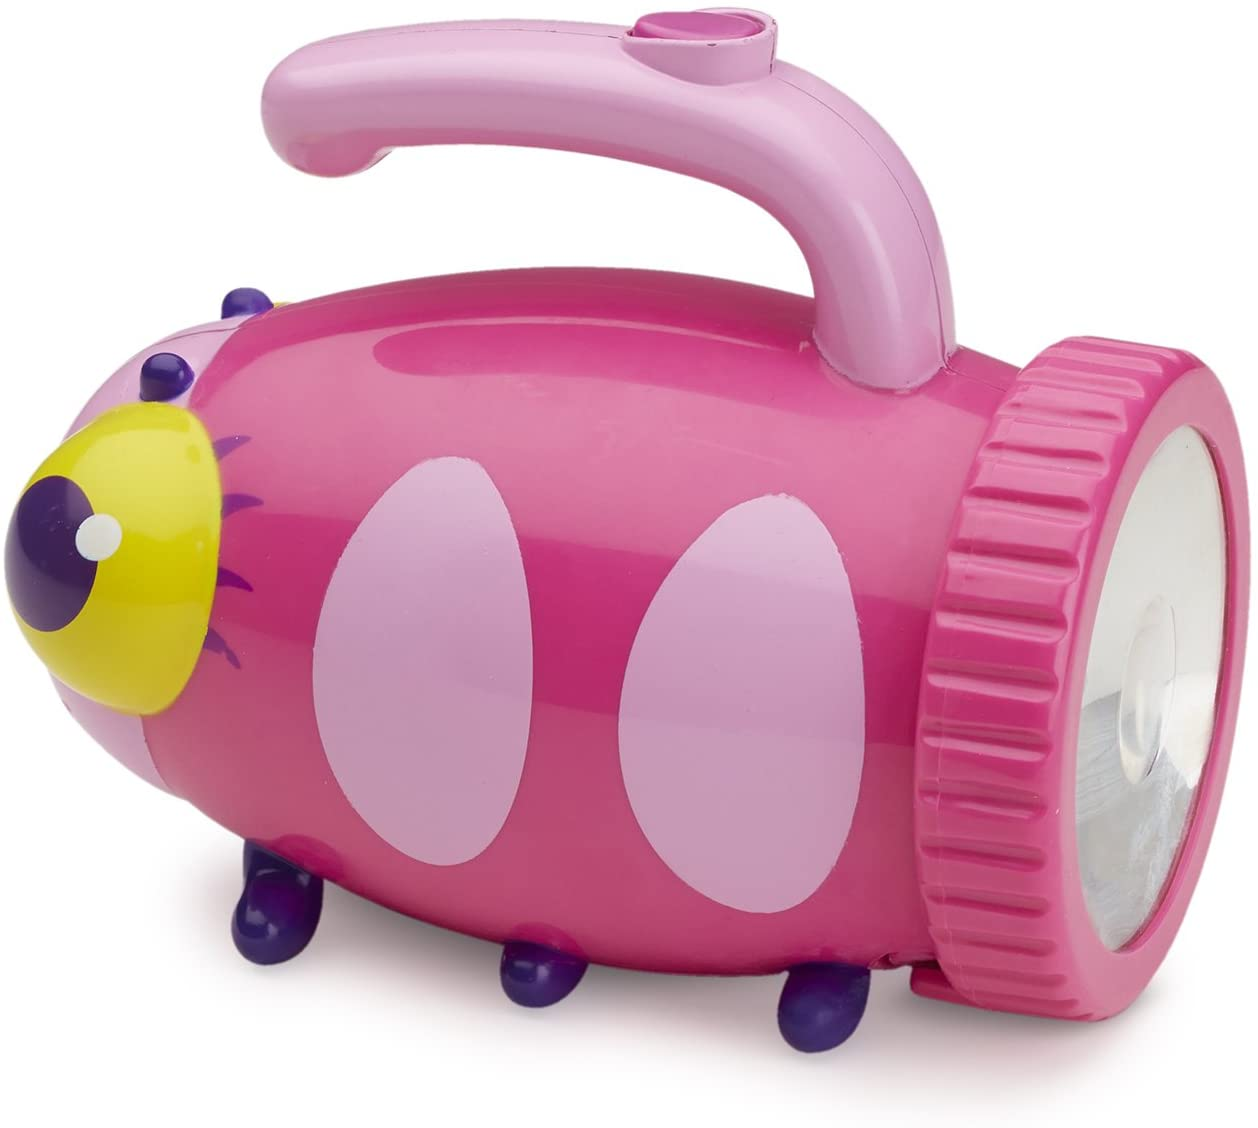 Sunny Patch Trixie Ladybug Flashlight with Easy-Grip Handle